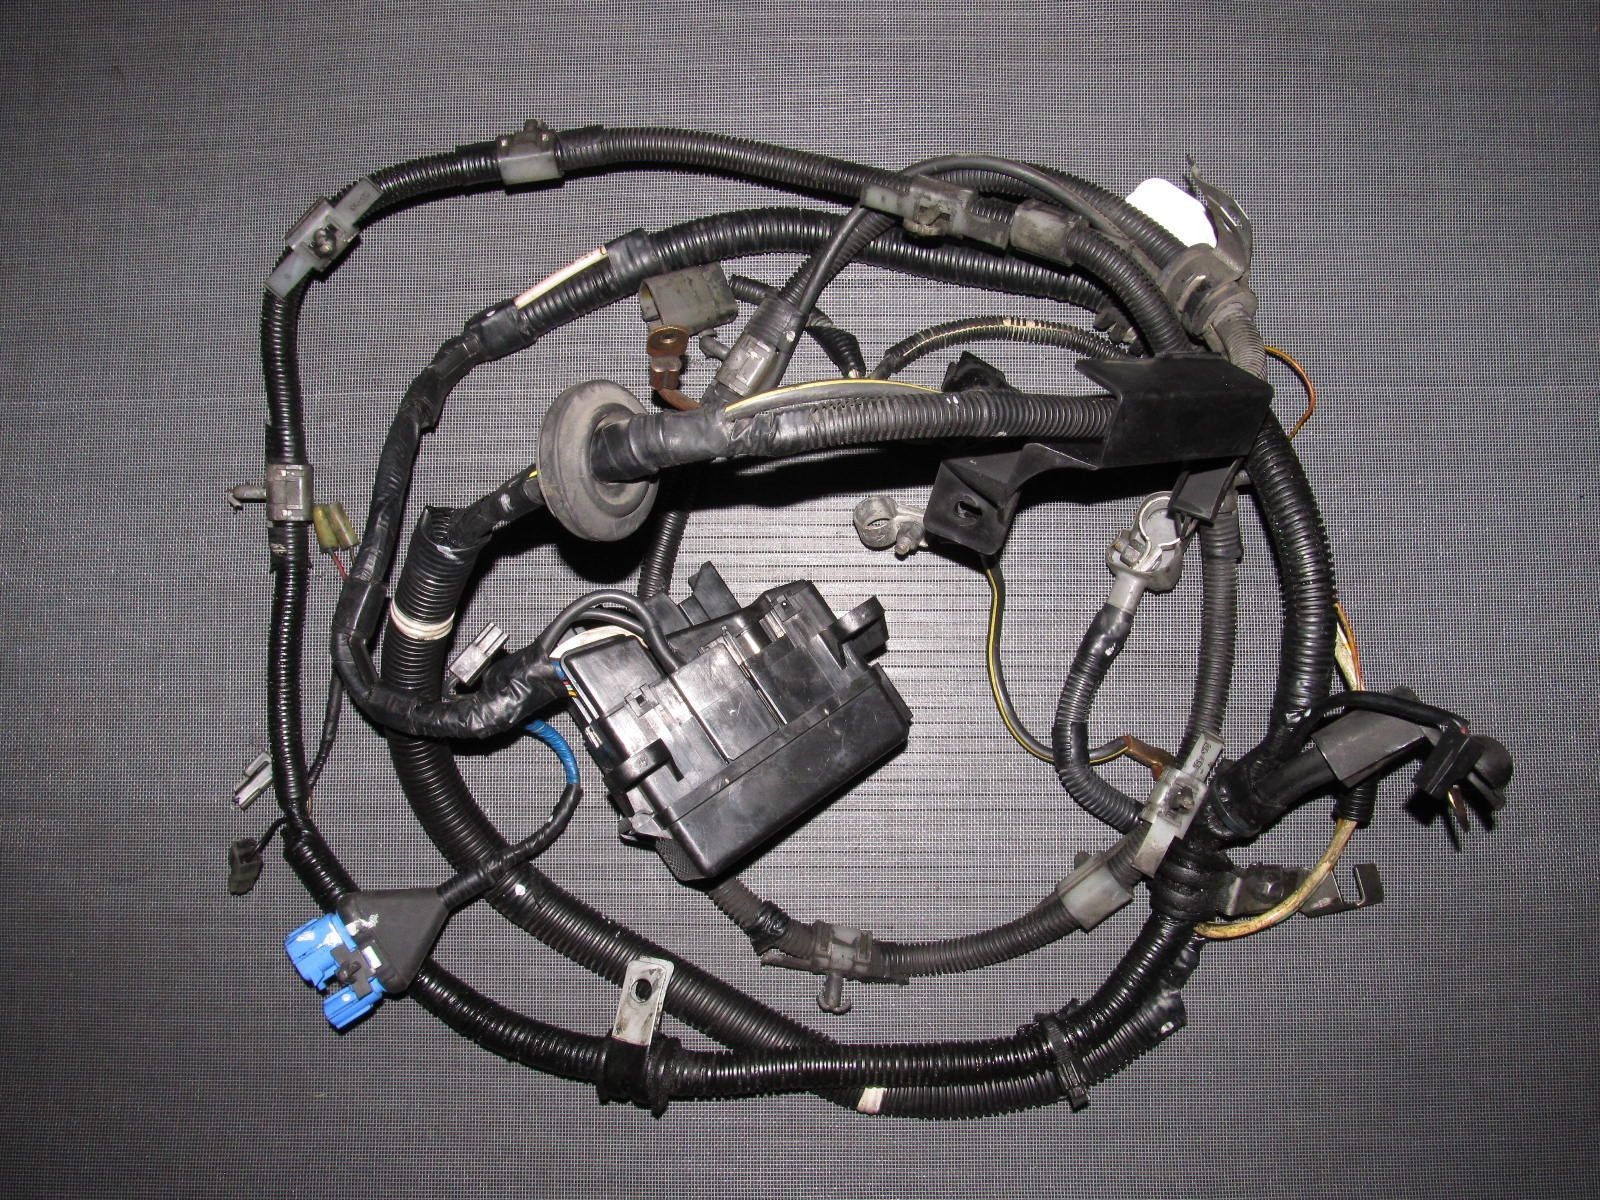 90 91 92 93 mazda miata fuse box transmission engine wiring 90 91 92 93 mazda miata fuse box transmission engine wiring harness